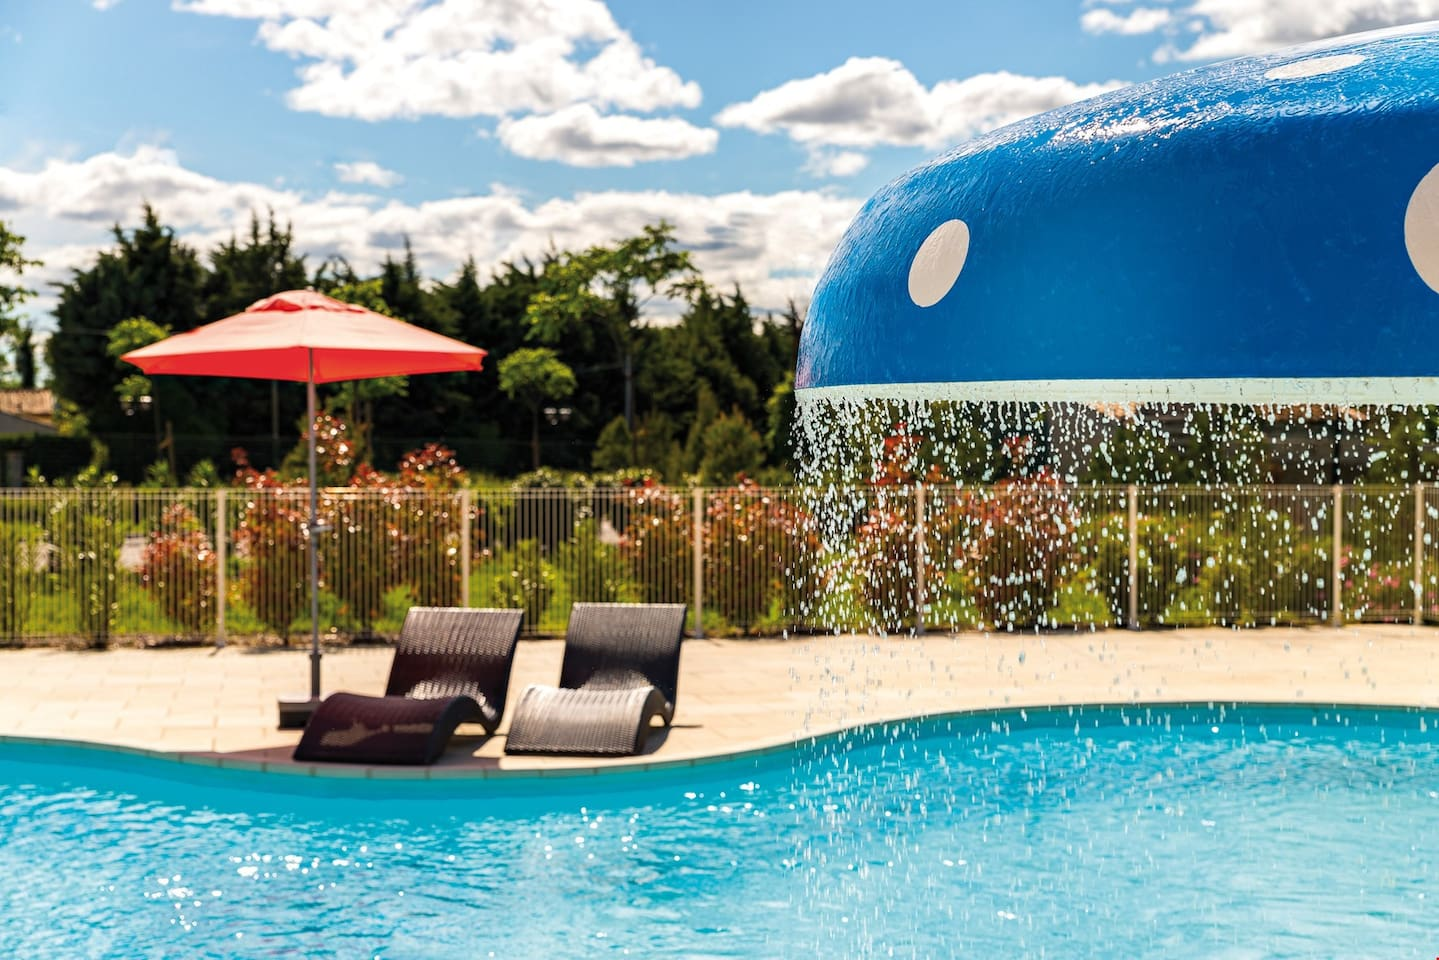 Enjoy relaxing by the outdoor swimming pool.